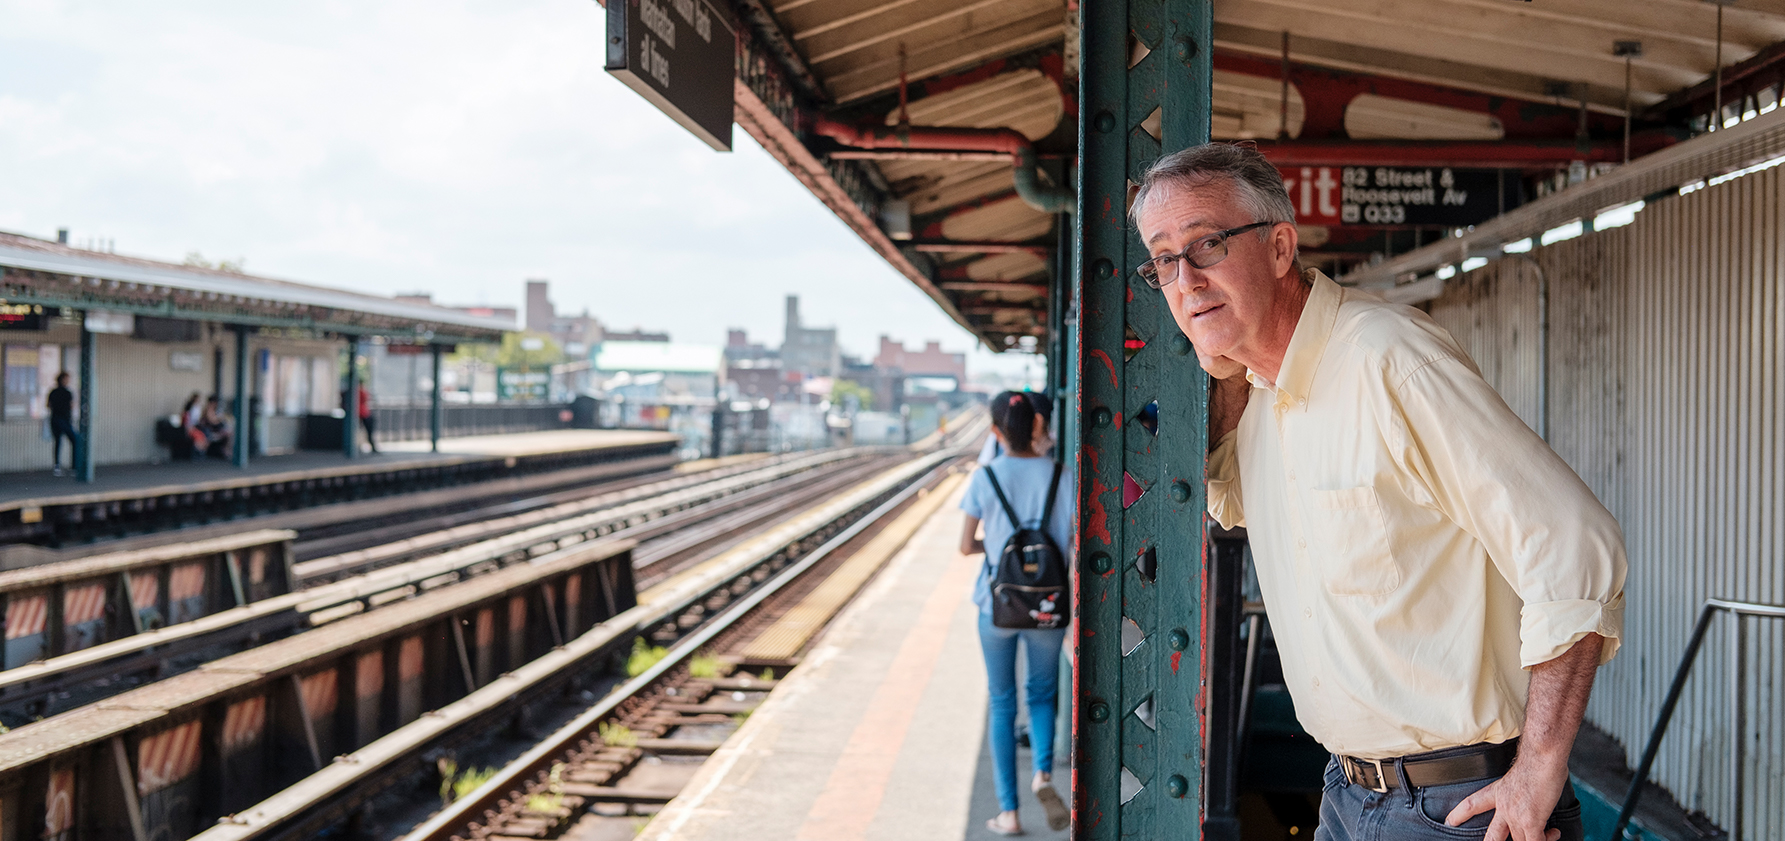 Fred Rooney waits for the train